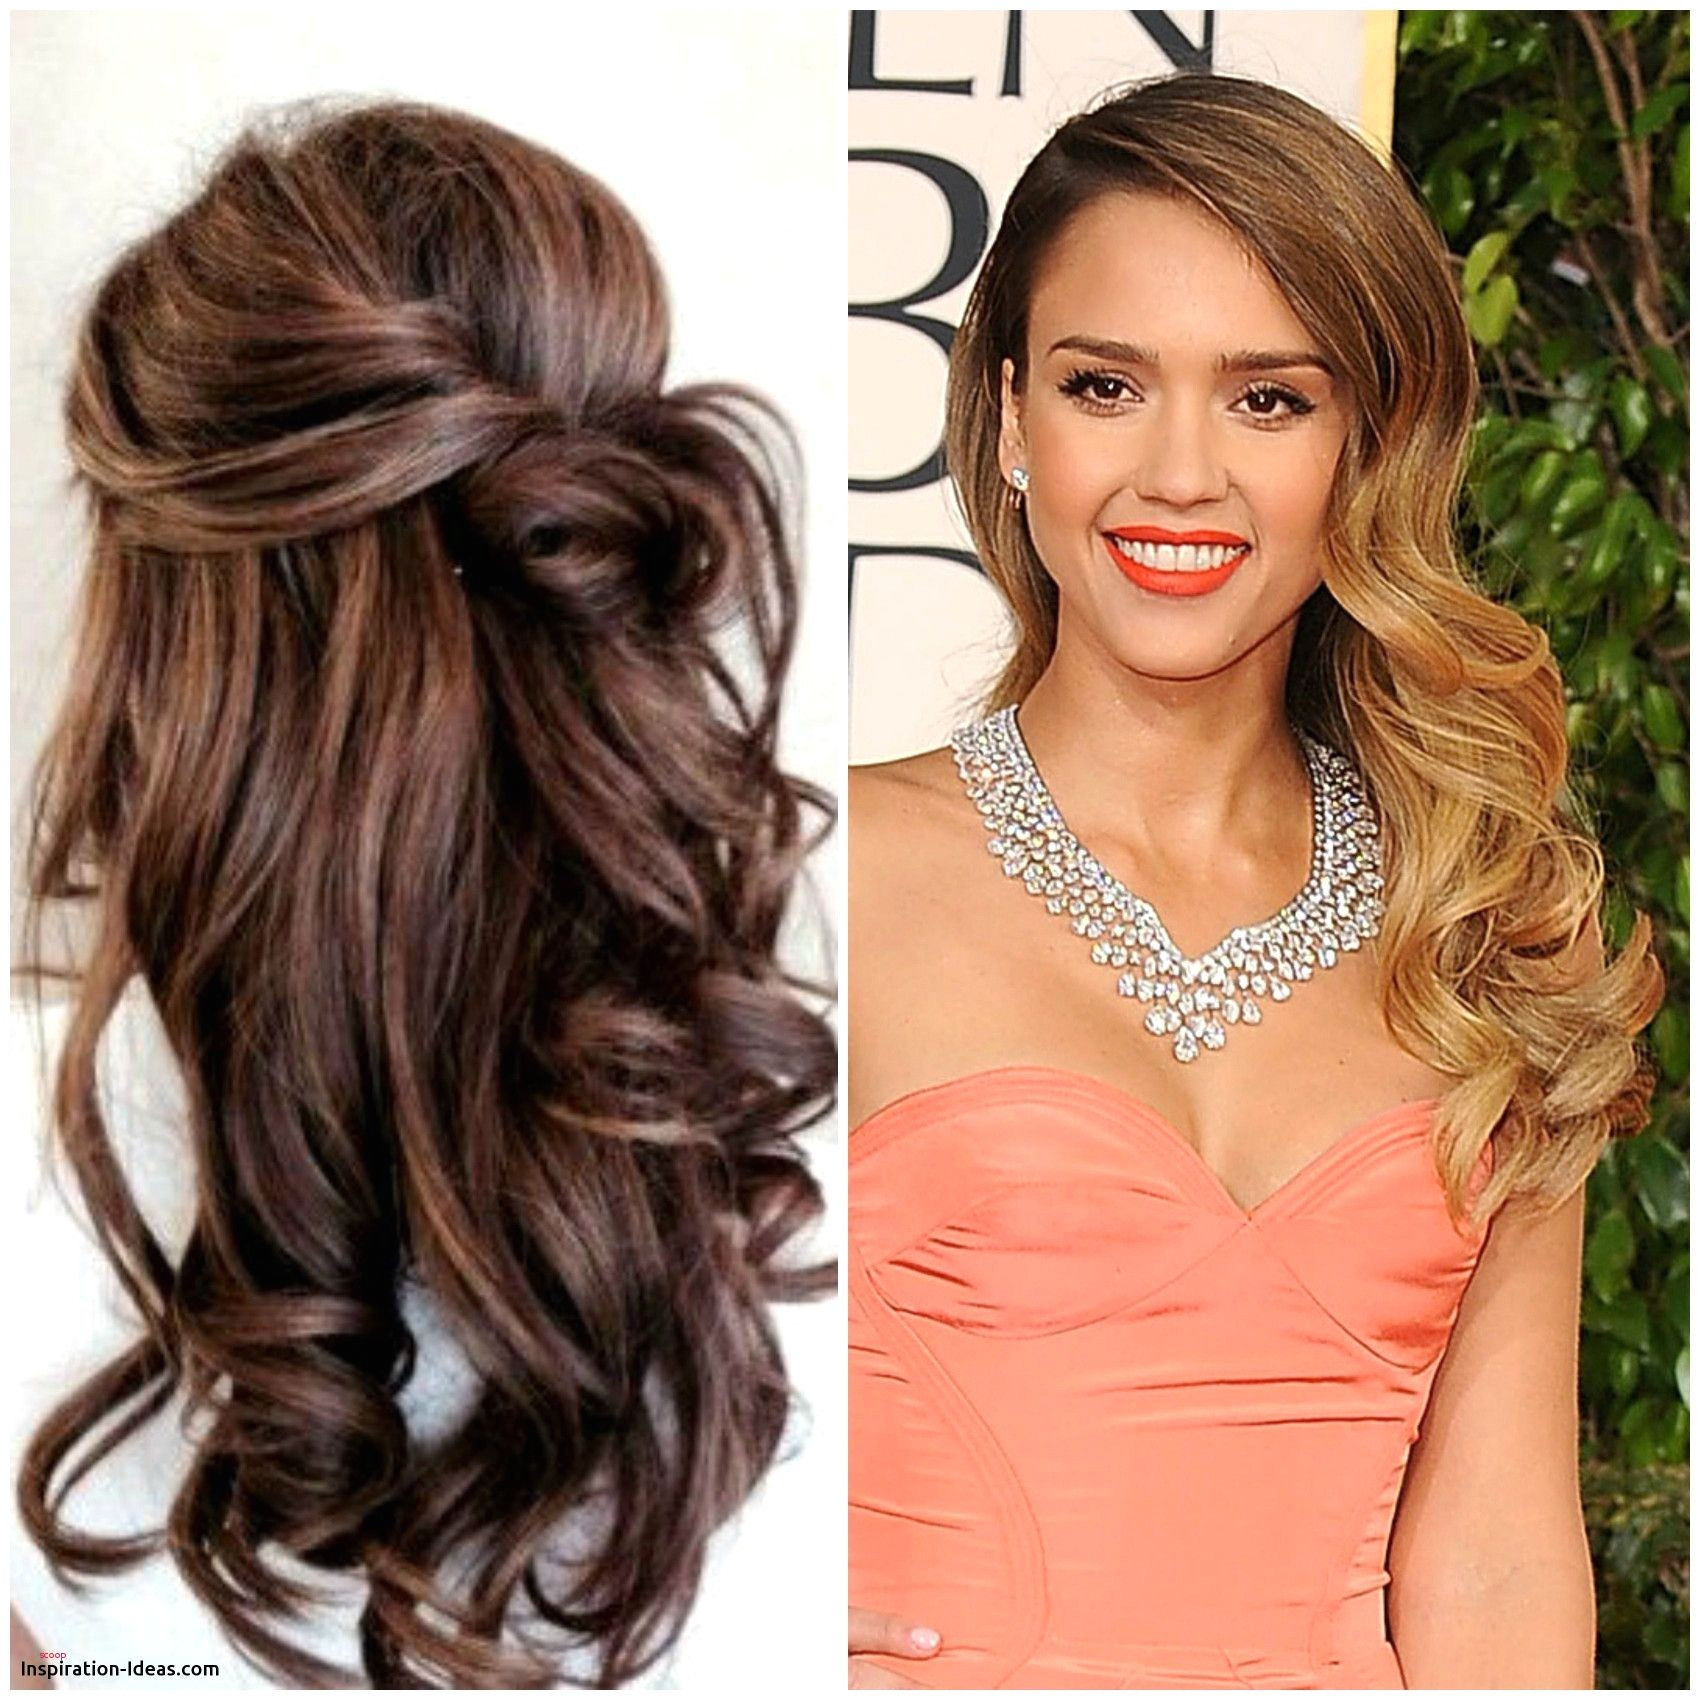 Hairstyles For Short Hair For Girls Unique Best Short Haircuts Styles For La S